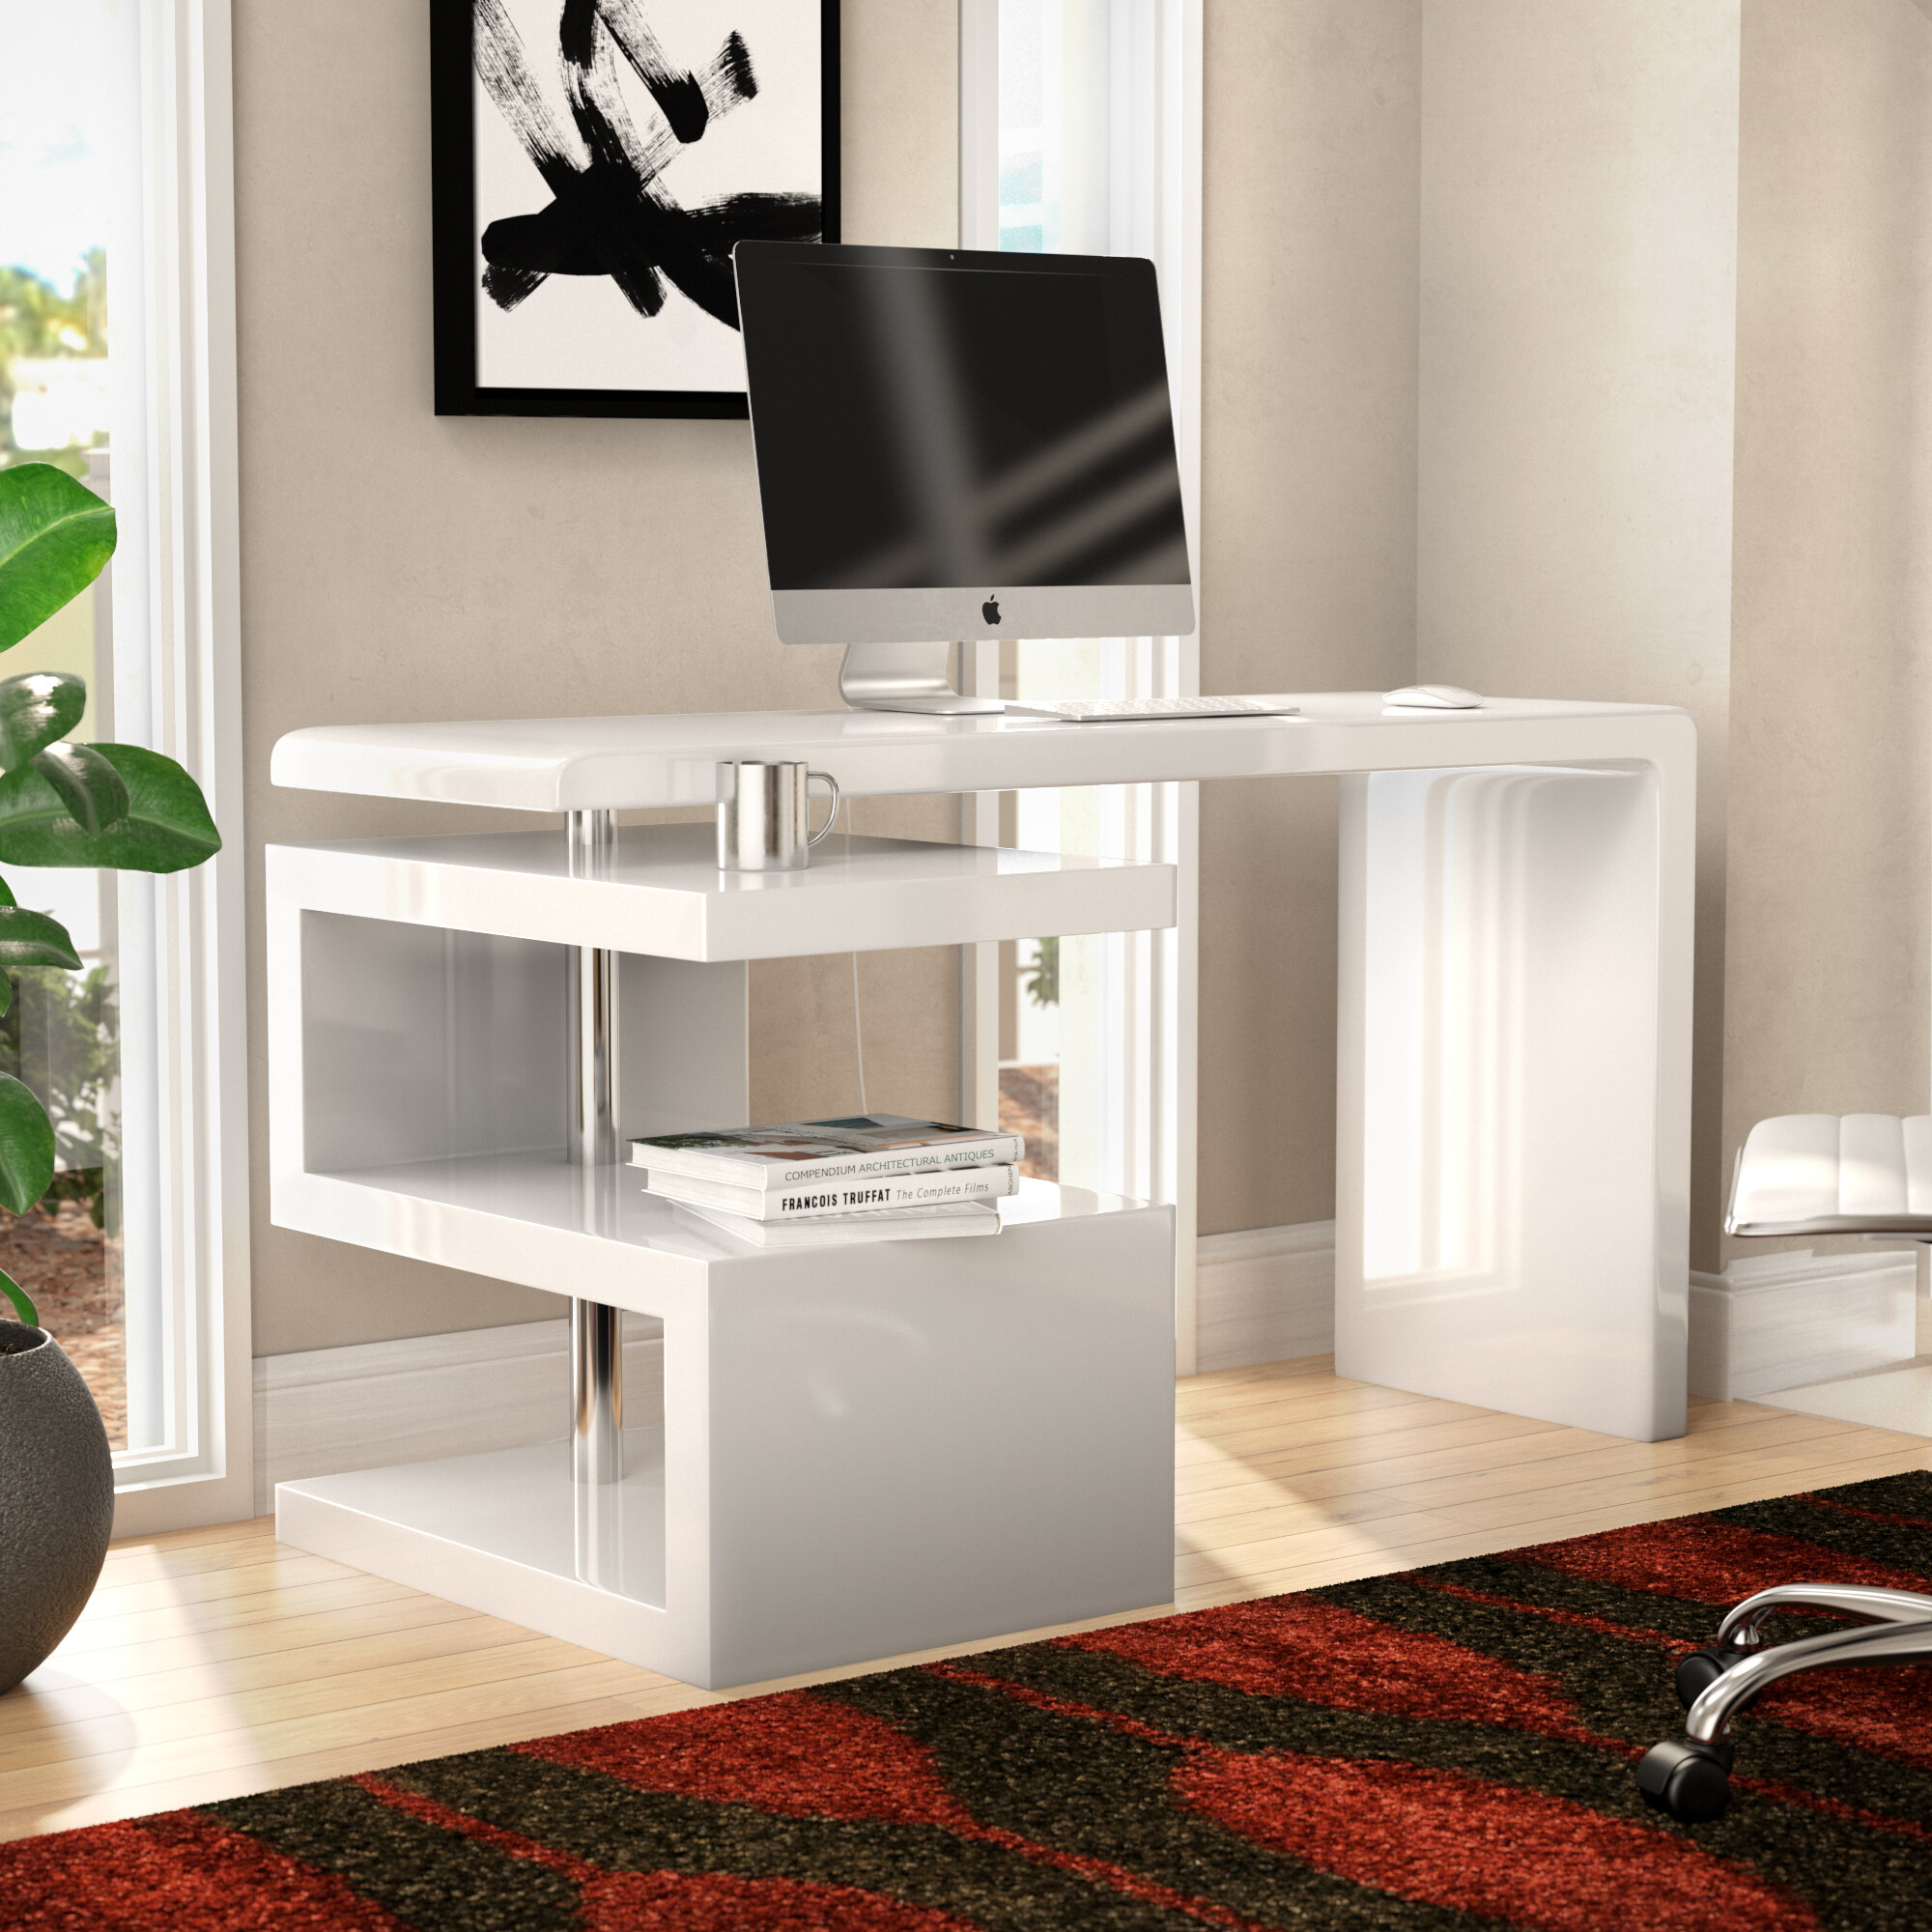 desk aosom computer table image grain home black products office homcom ca wooden